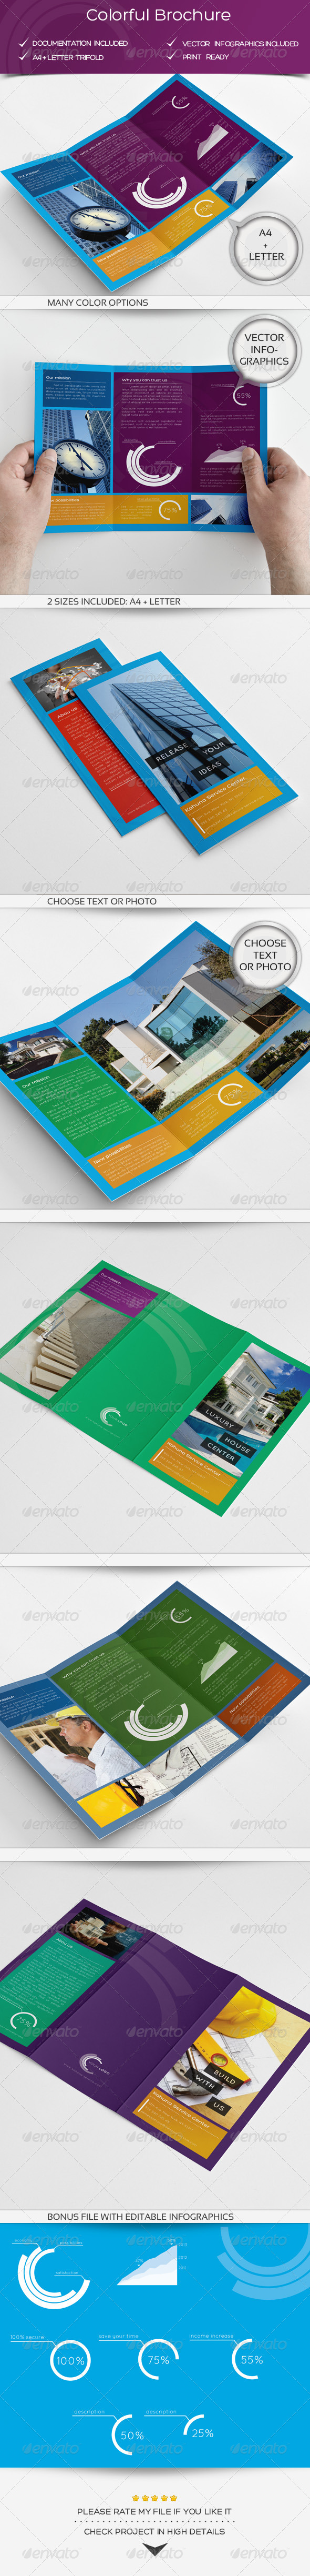 Colorful Brochure - Corporate Brochures